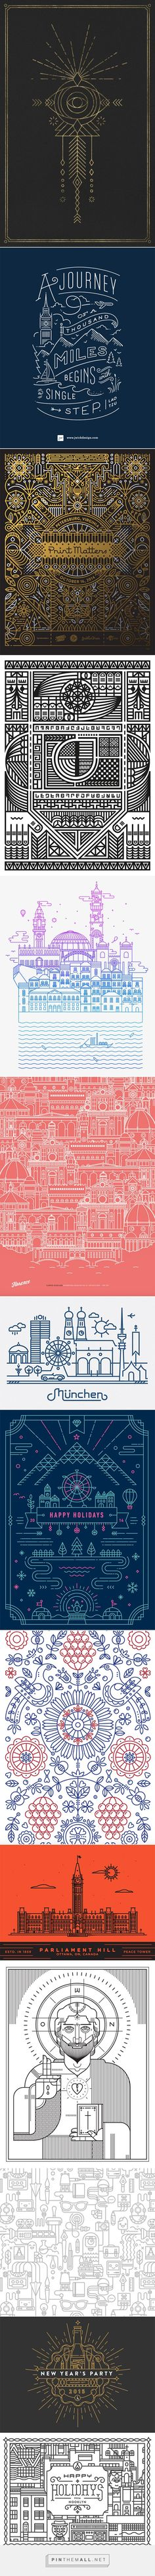 Showcase of Stylish Single Weight Line Art Illustrations - created via http://pinthemall.net